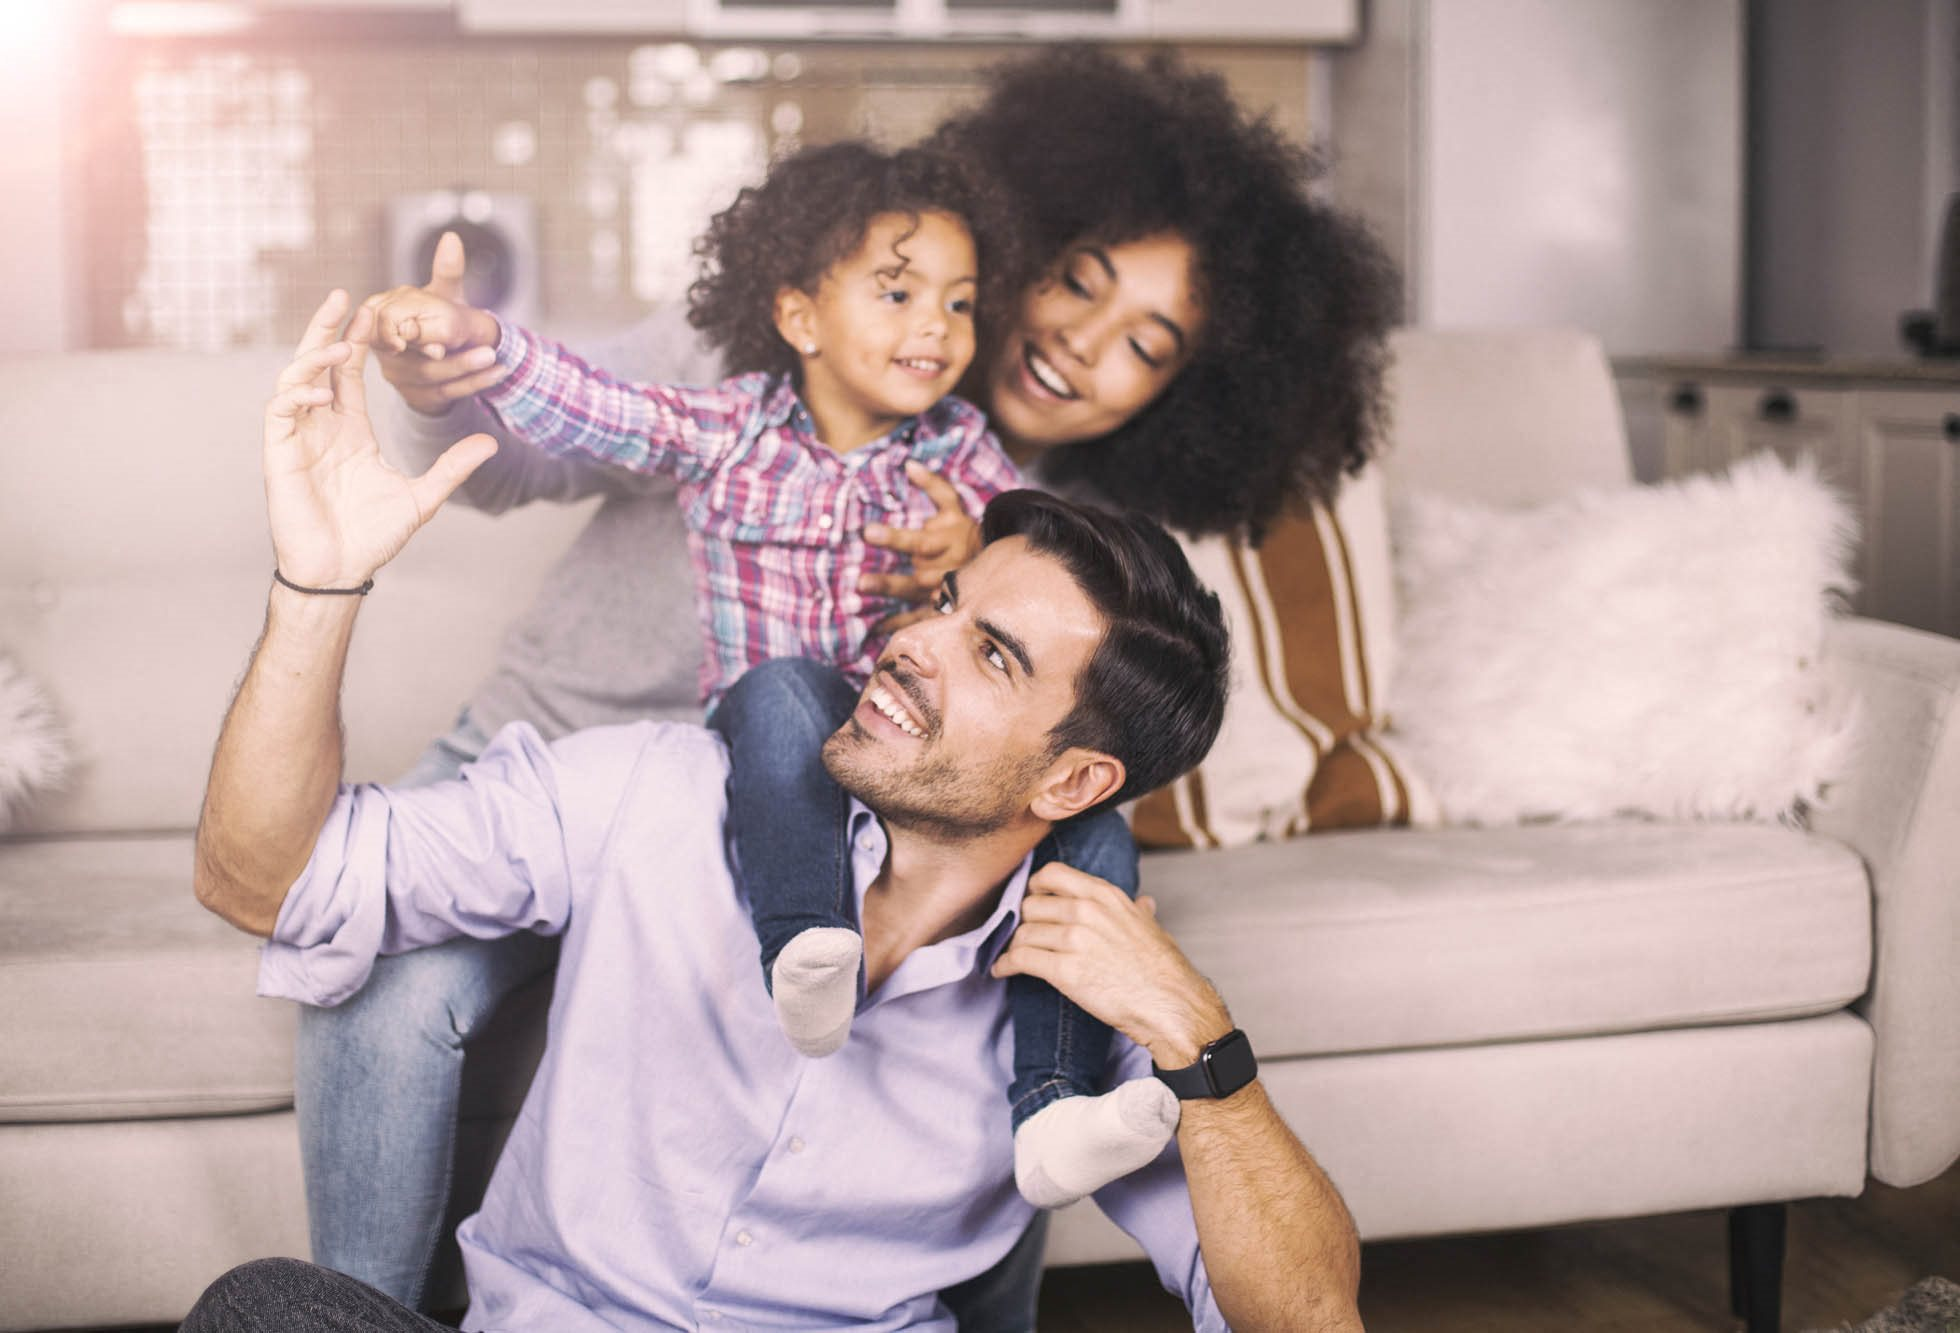 stock image- family in living room